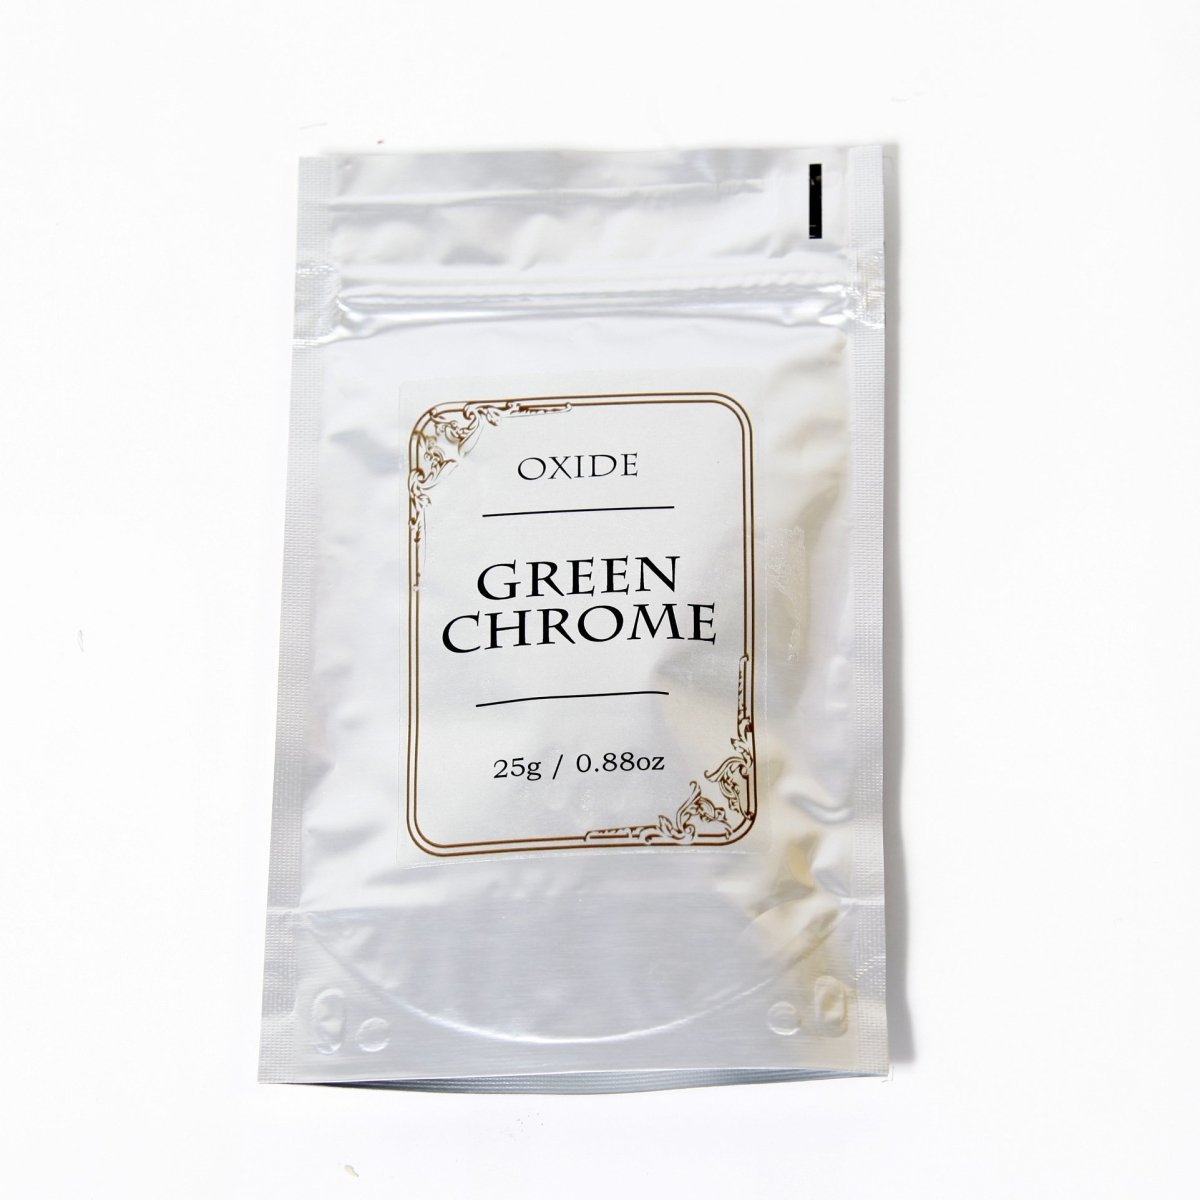 Green Chrome Oxide Mineral Powder - Mystic Moments UK